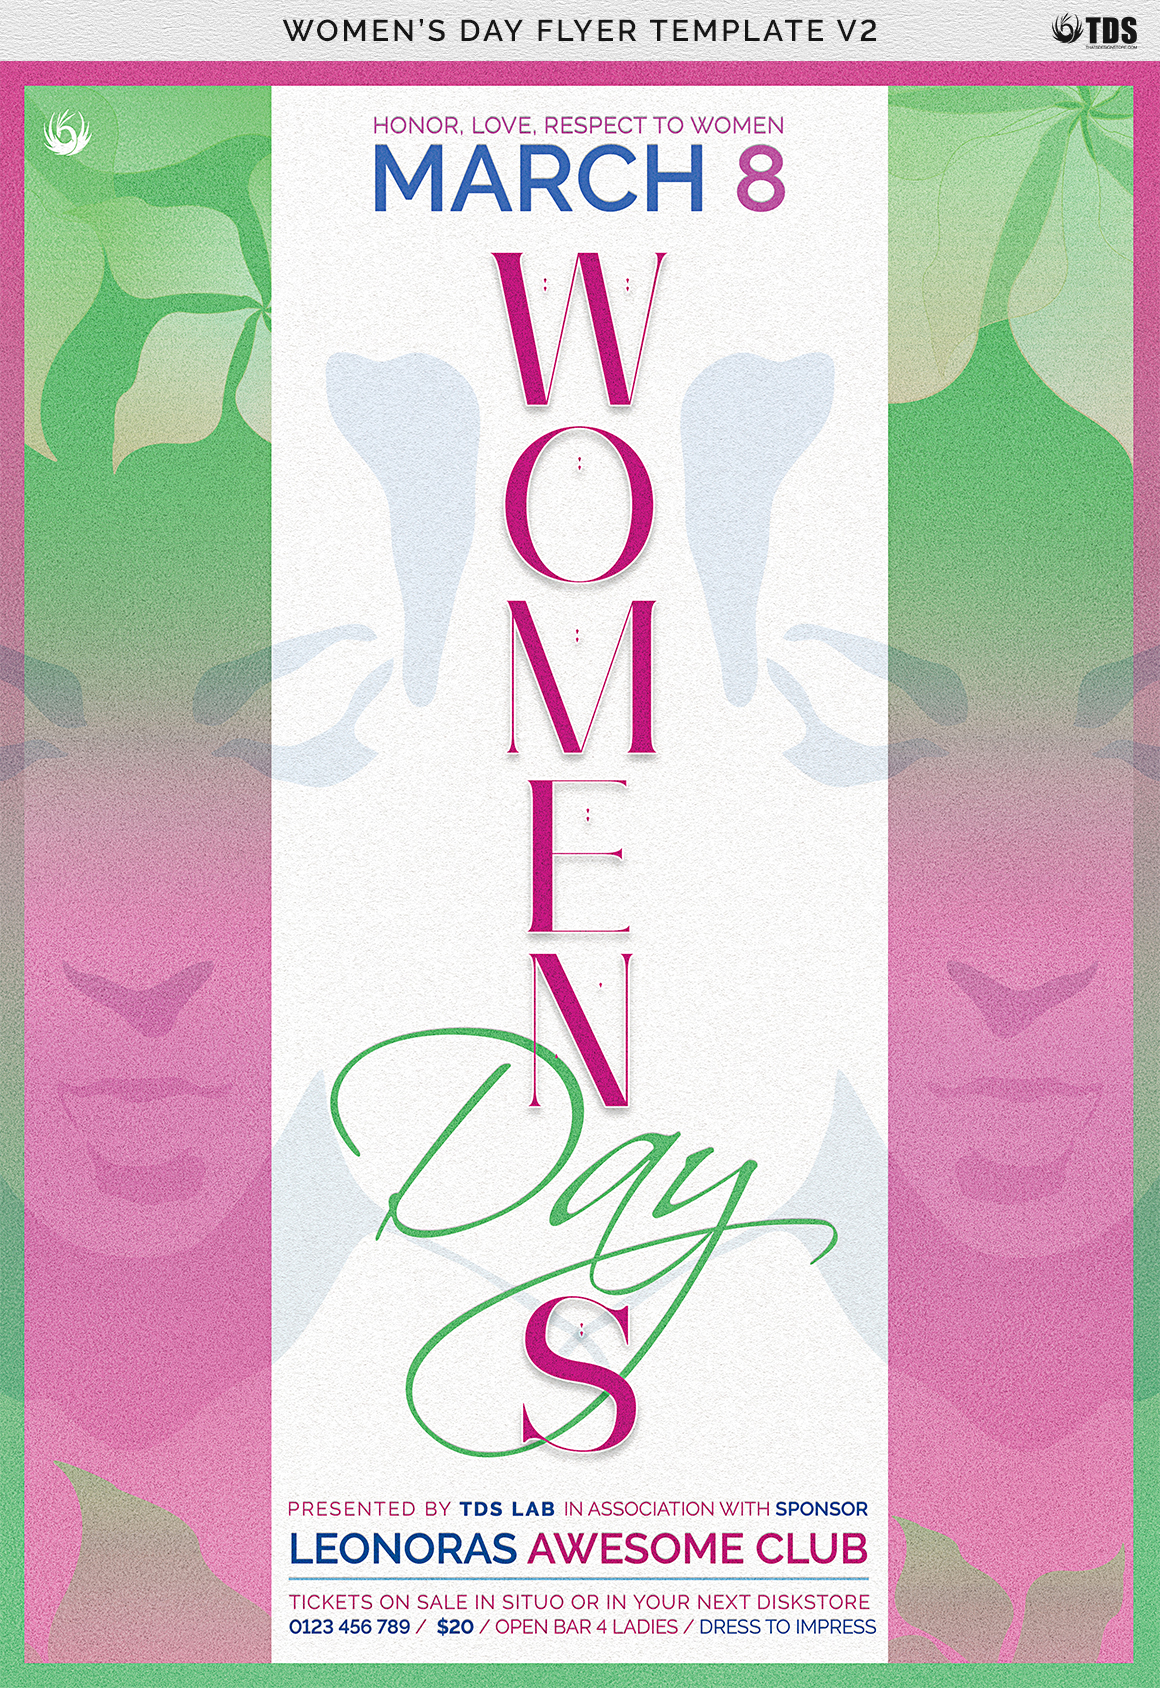 Womens Day Flyer Template V2 example image 7